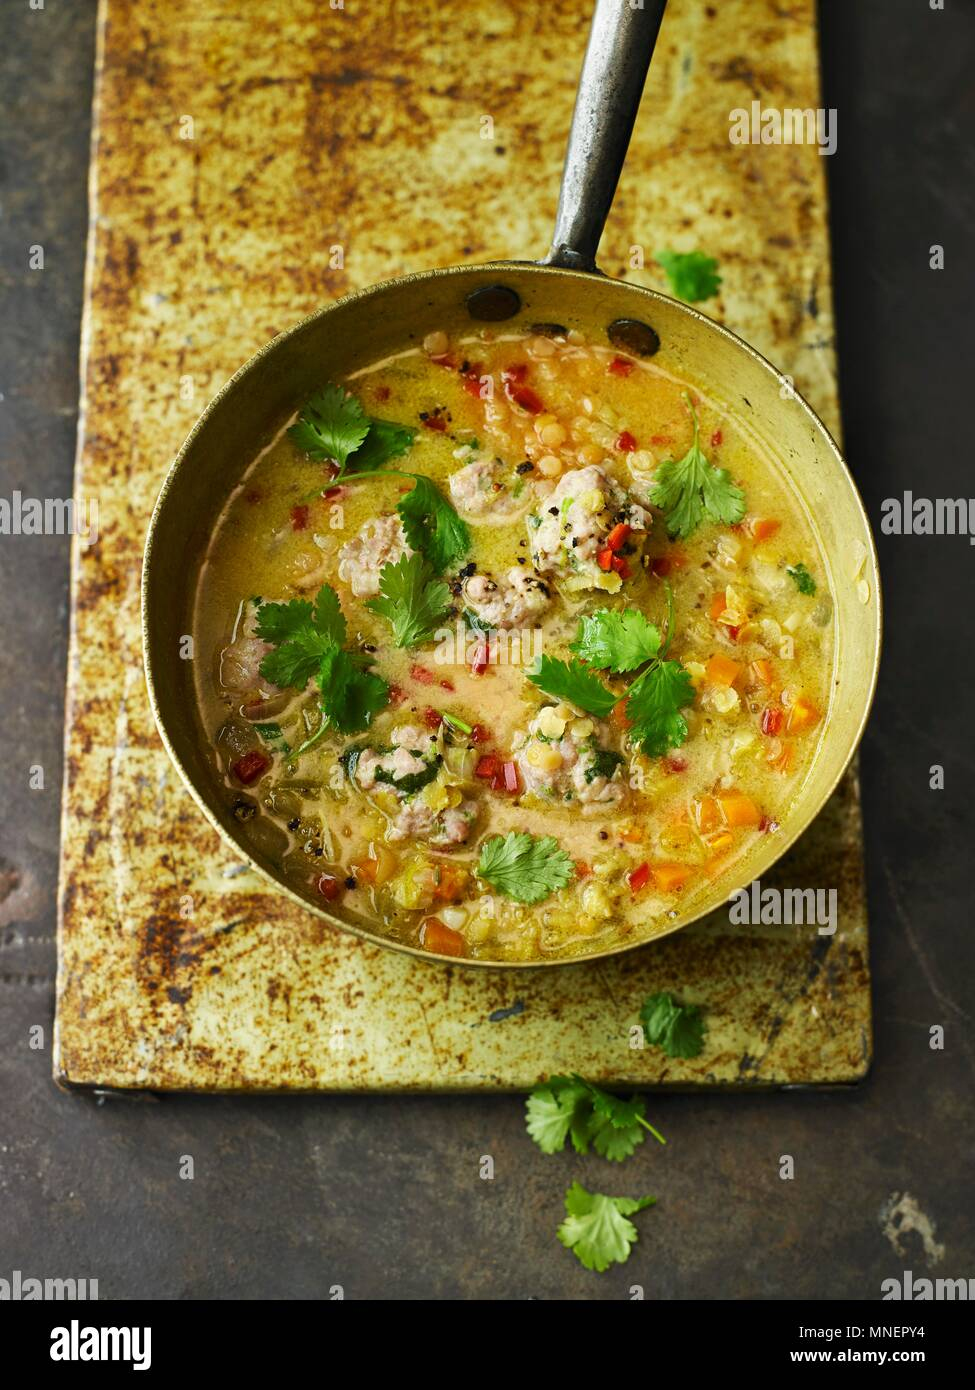 Spicy Red Lentil, Coconut, and Coriander Soup with Chicken Dumplings - Stock Image